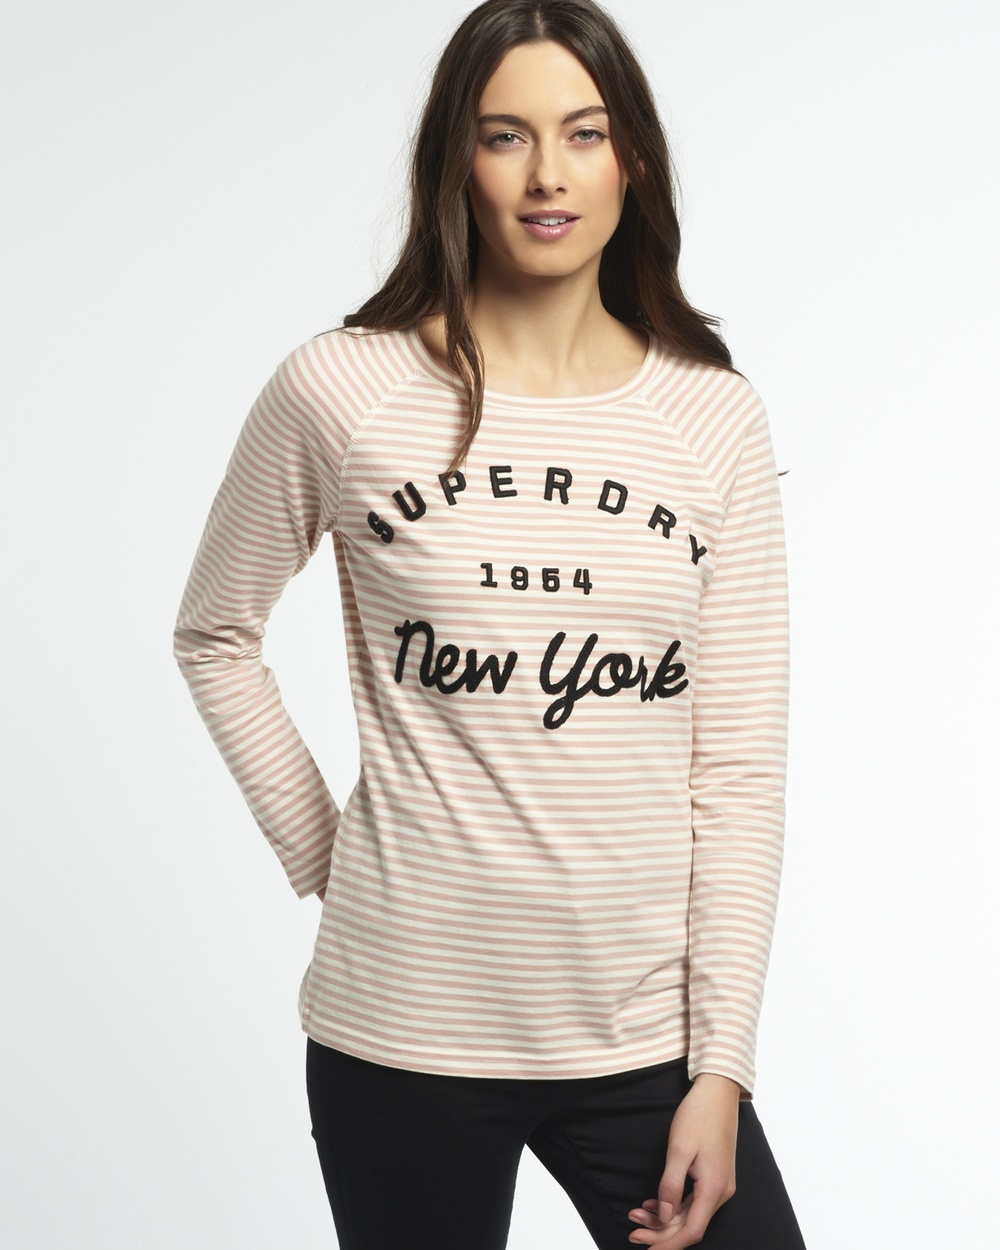 Superdry Applique Raglan Stripe T shirt Tops Blush Pink/Cream Stripe Applique Raglan Stripe T-shirt